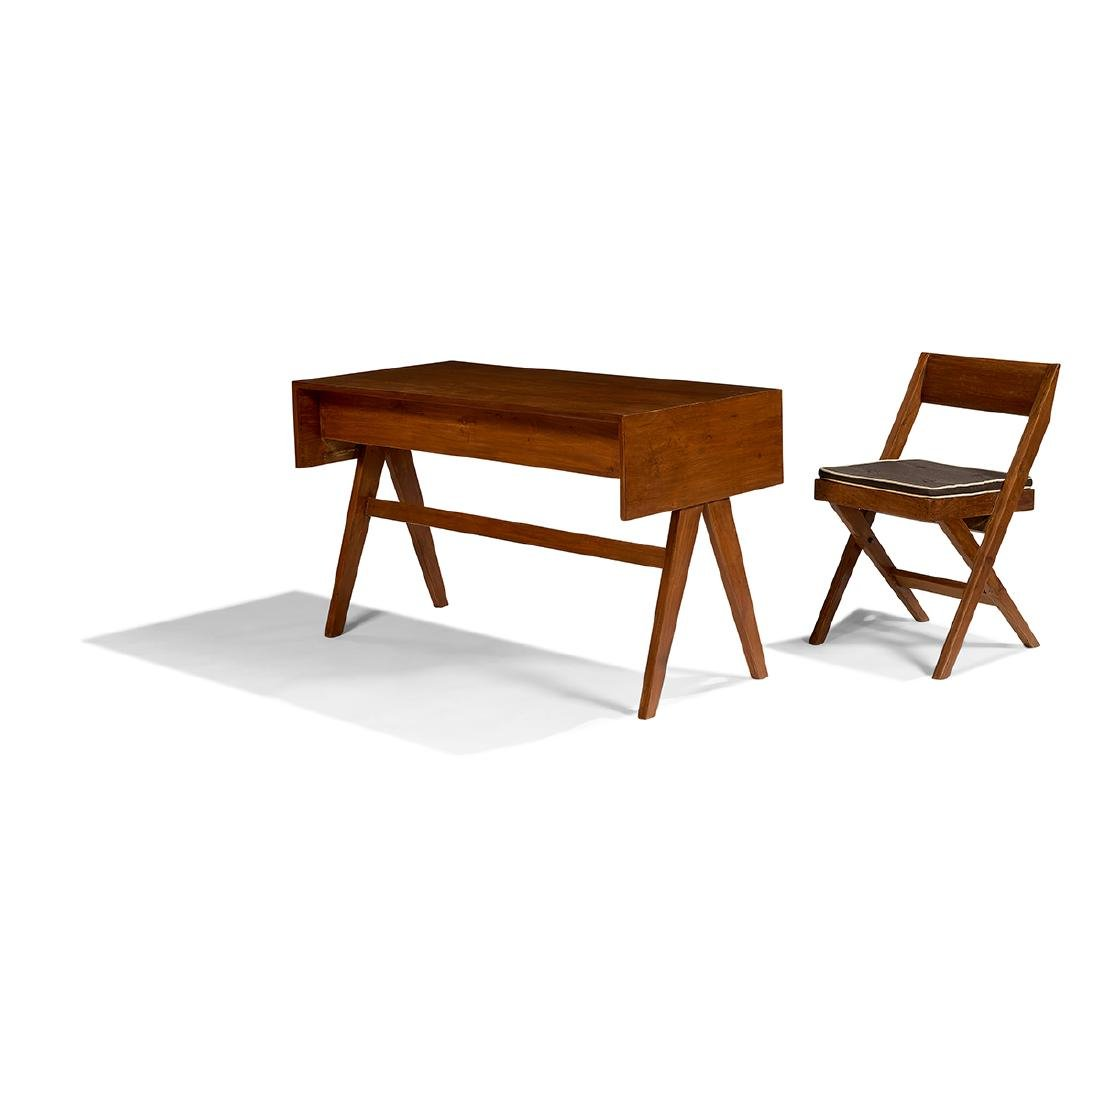 Pierre Jeanneret Student desk and Library chair